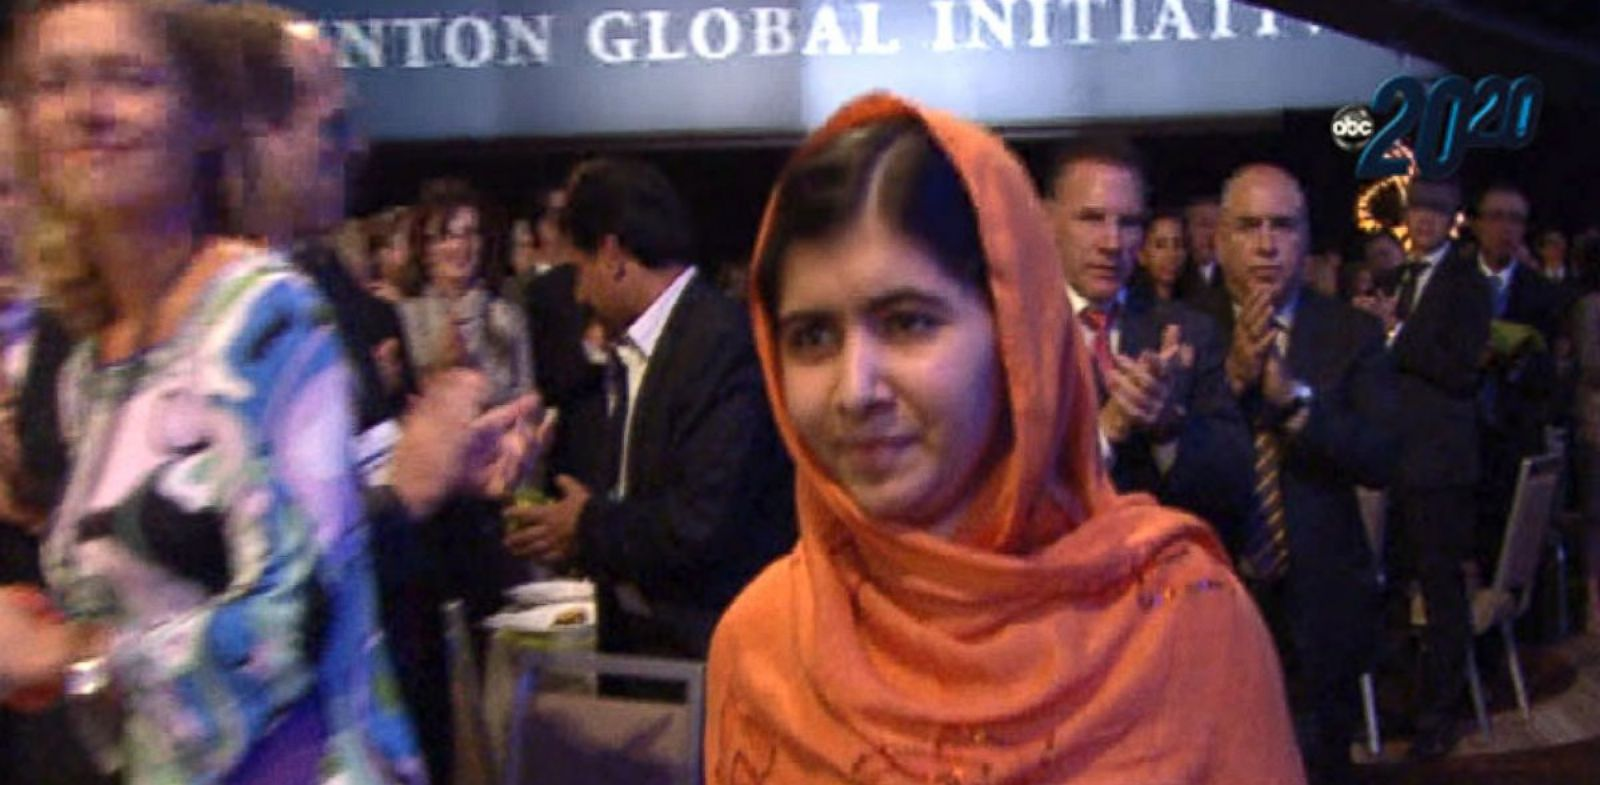 PHOTO: Malala Yousafzai is seen in the crowd at the Global Initiative meeting, Oct . 10, 2013.